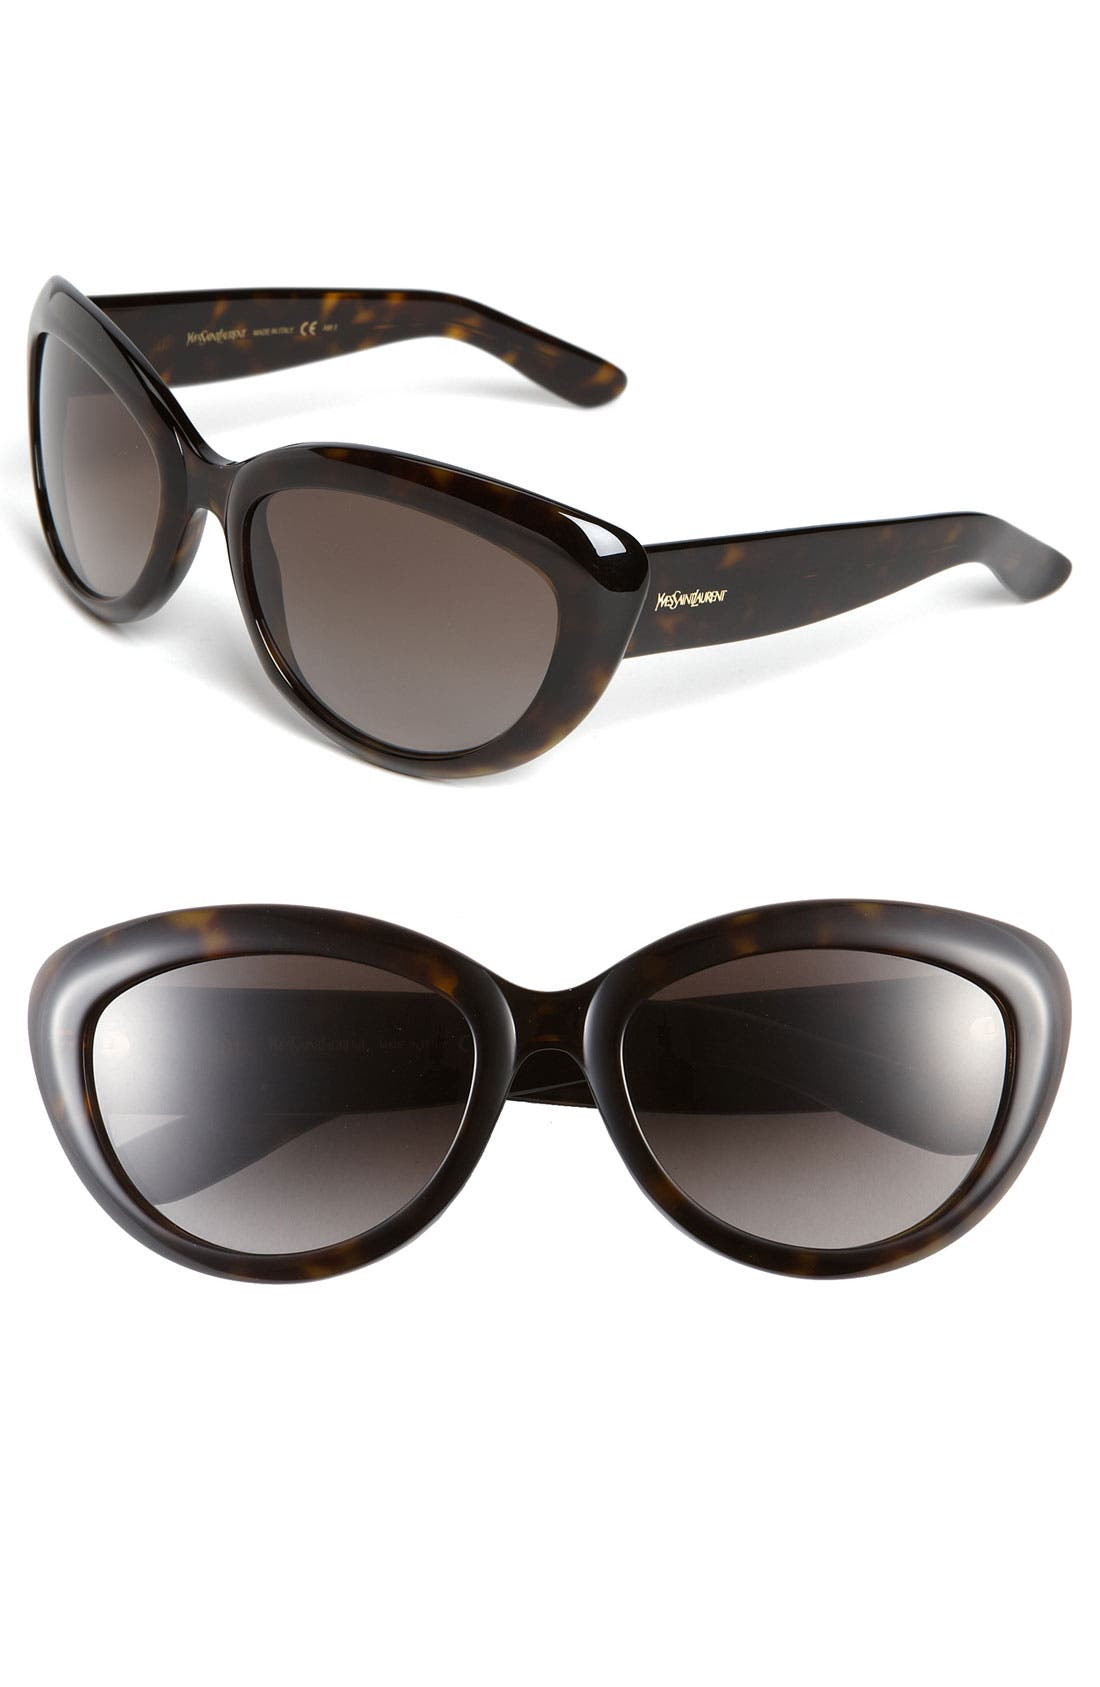 Main Image - Yves Saint Laurent 56mm Cat's Eye Sunglasses